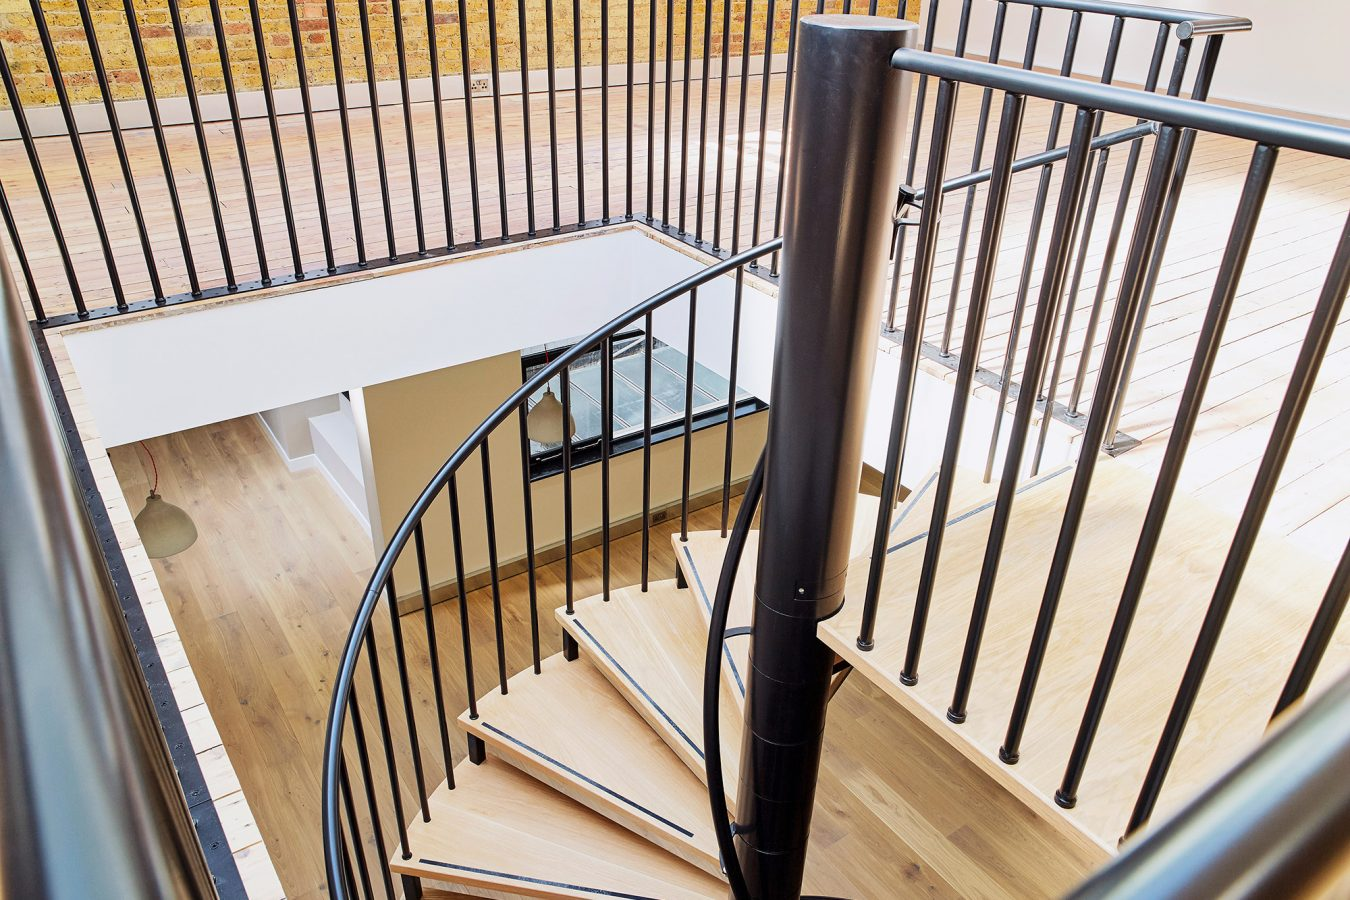 Cilindric metal and wood staircase for office space.